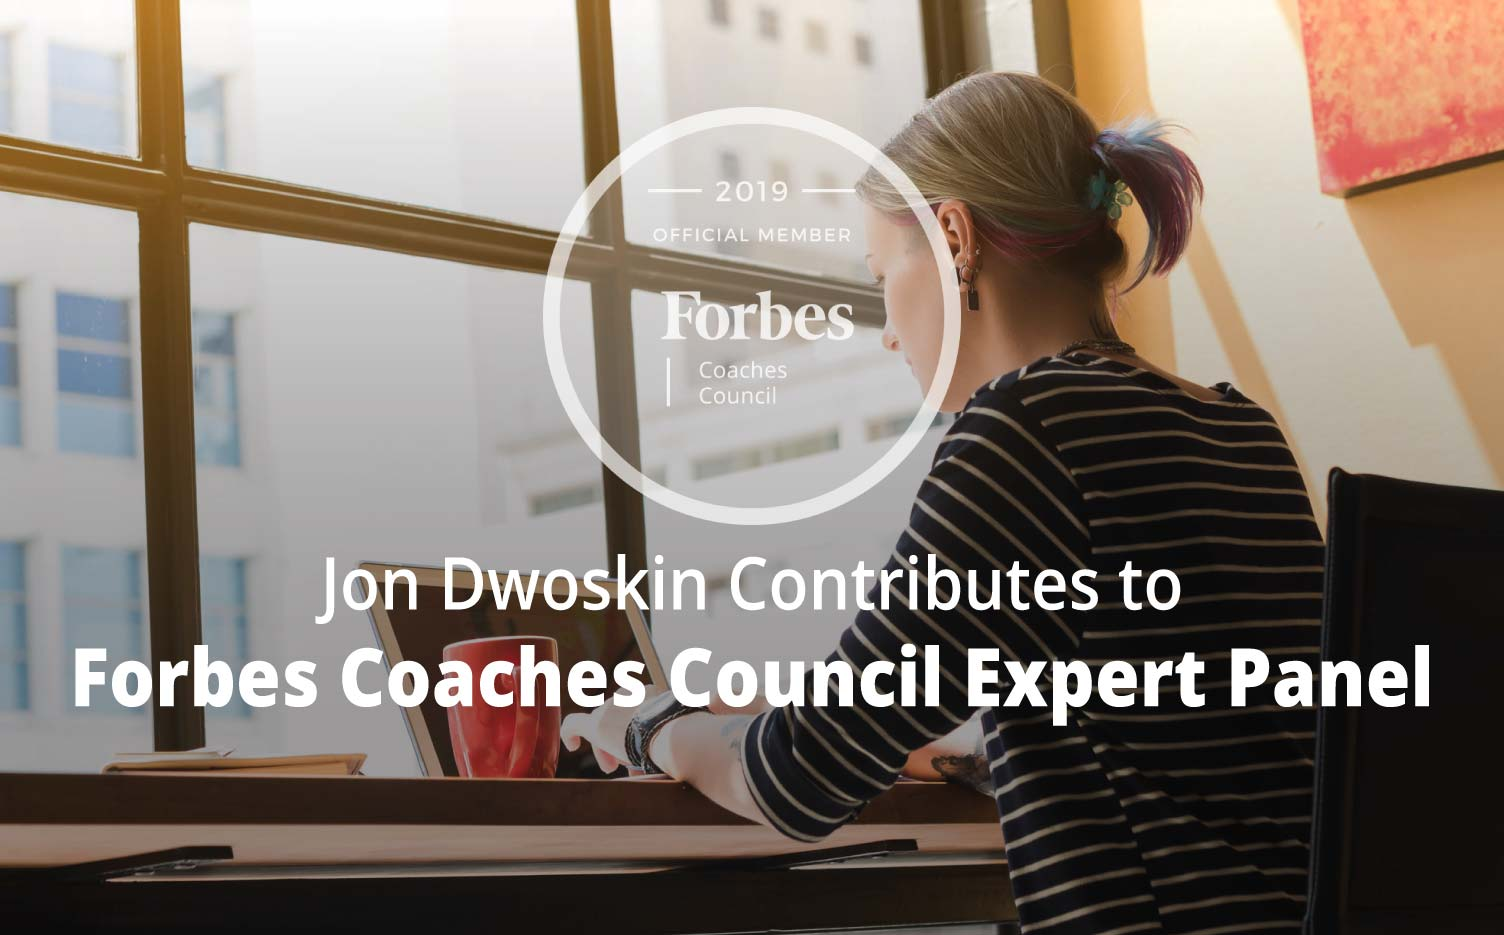 Jon Dwoskin Contributes to Forbes Coaches Council Expert Panel: 15 Ways New Freelancers Can Stand Out To Potential Clients